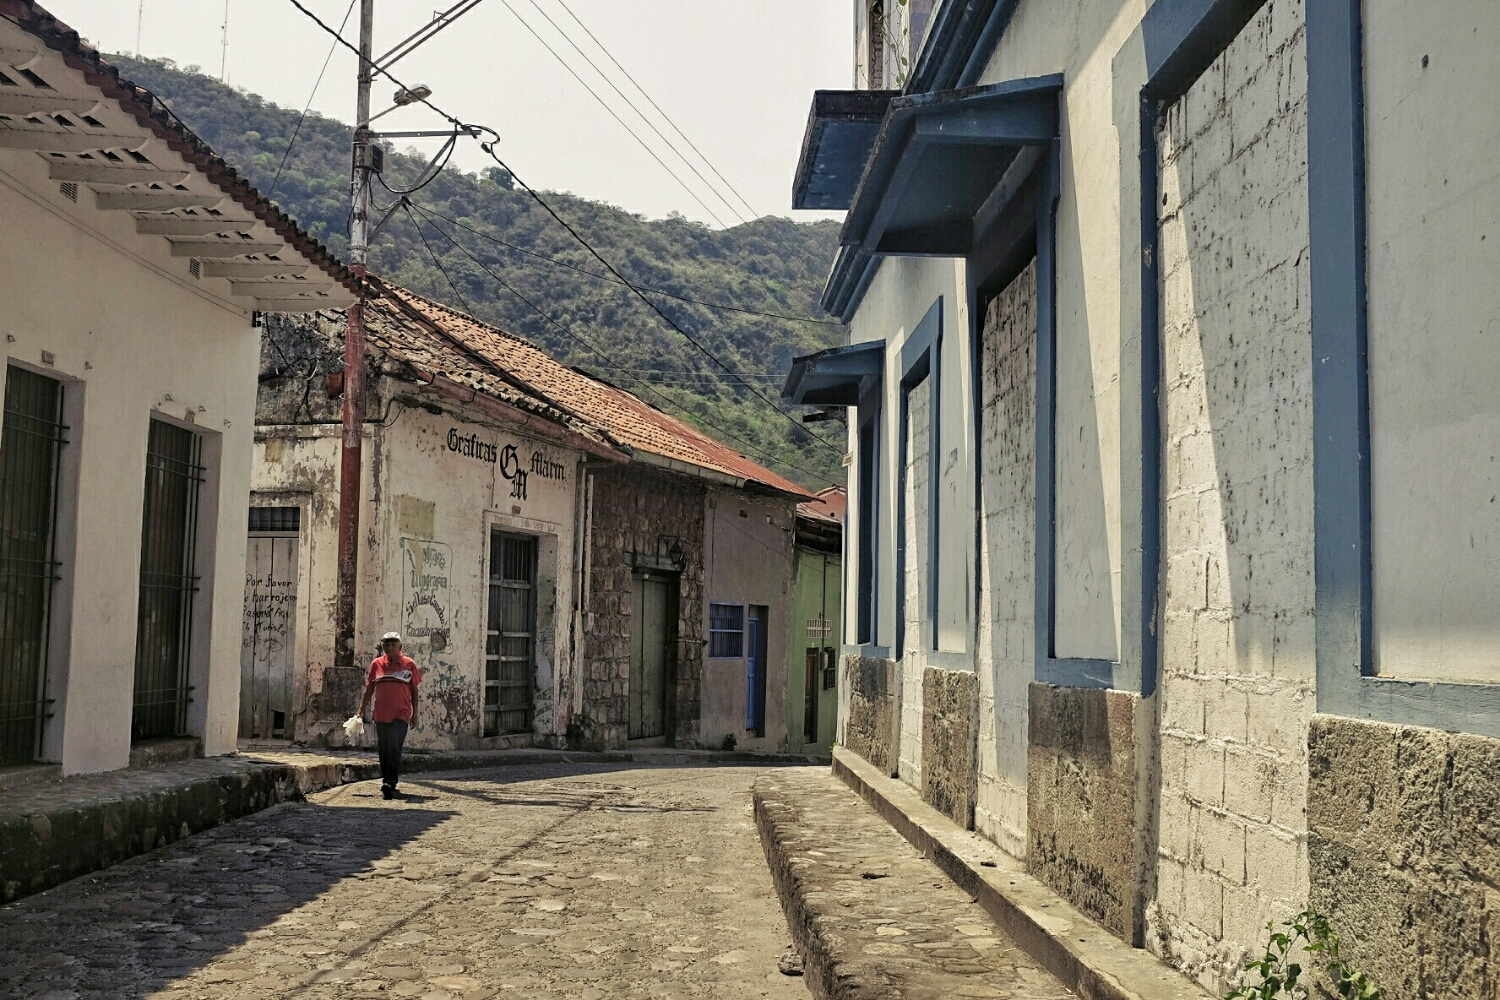 The streets of Honda. Some houses could need some maintenance, but the style is unquestionably colonial.